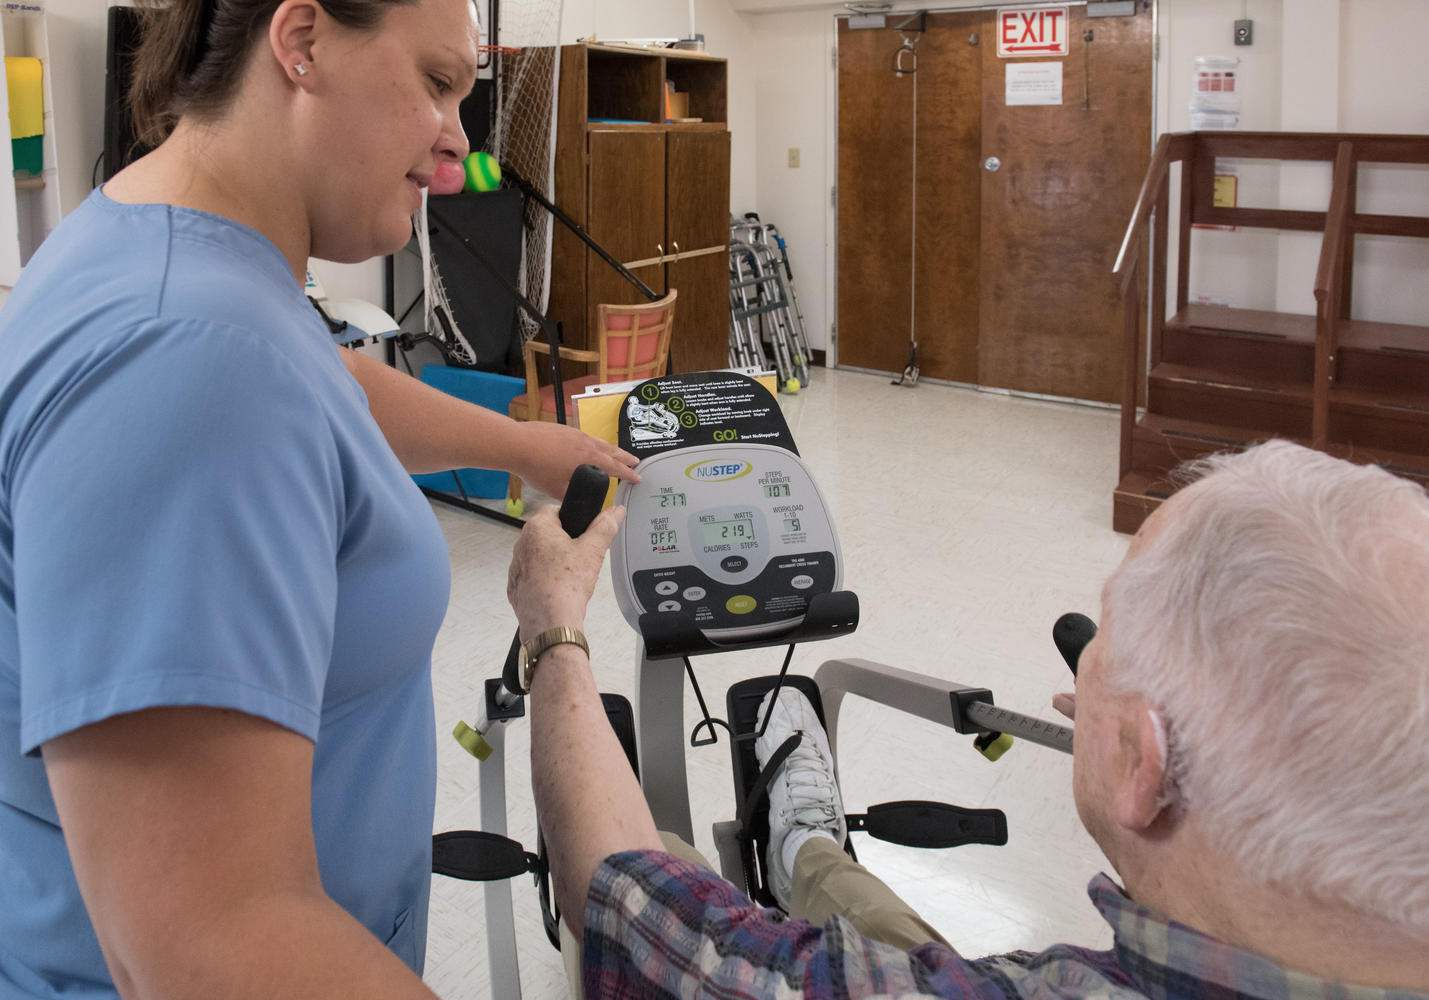 Therapist instructing patient using equipment during Stonerise Princeton Therapy session